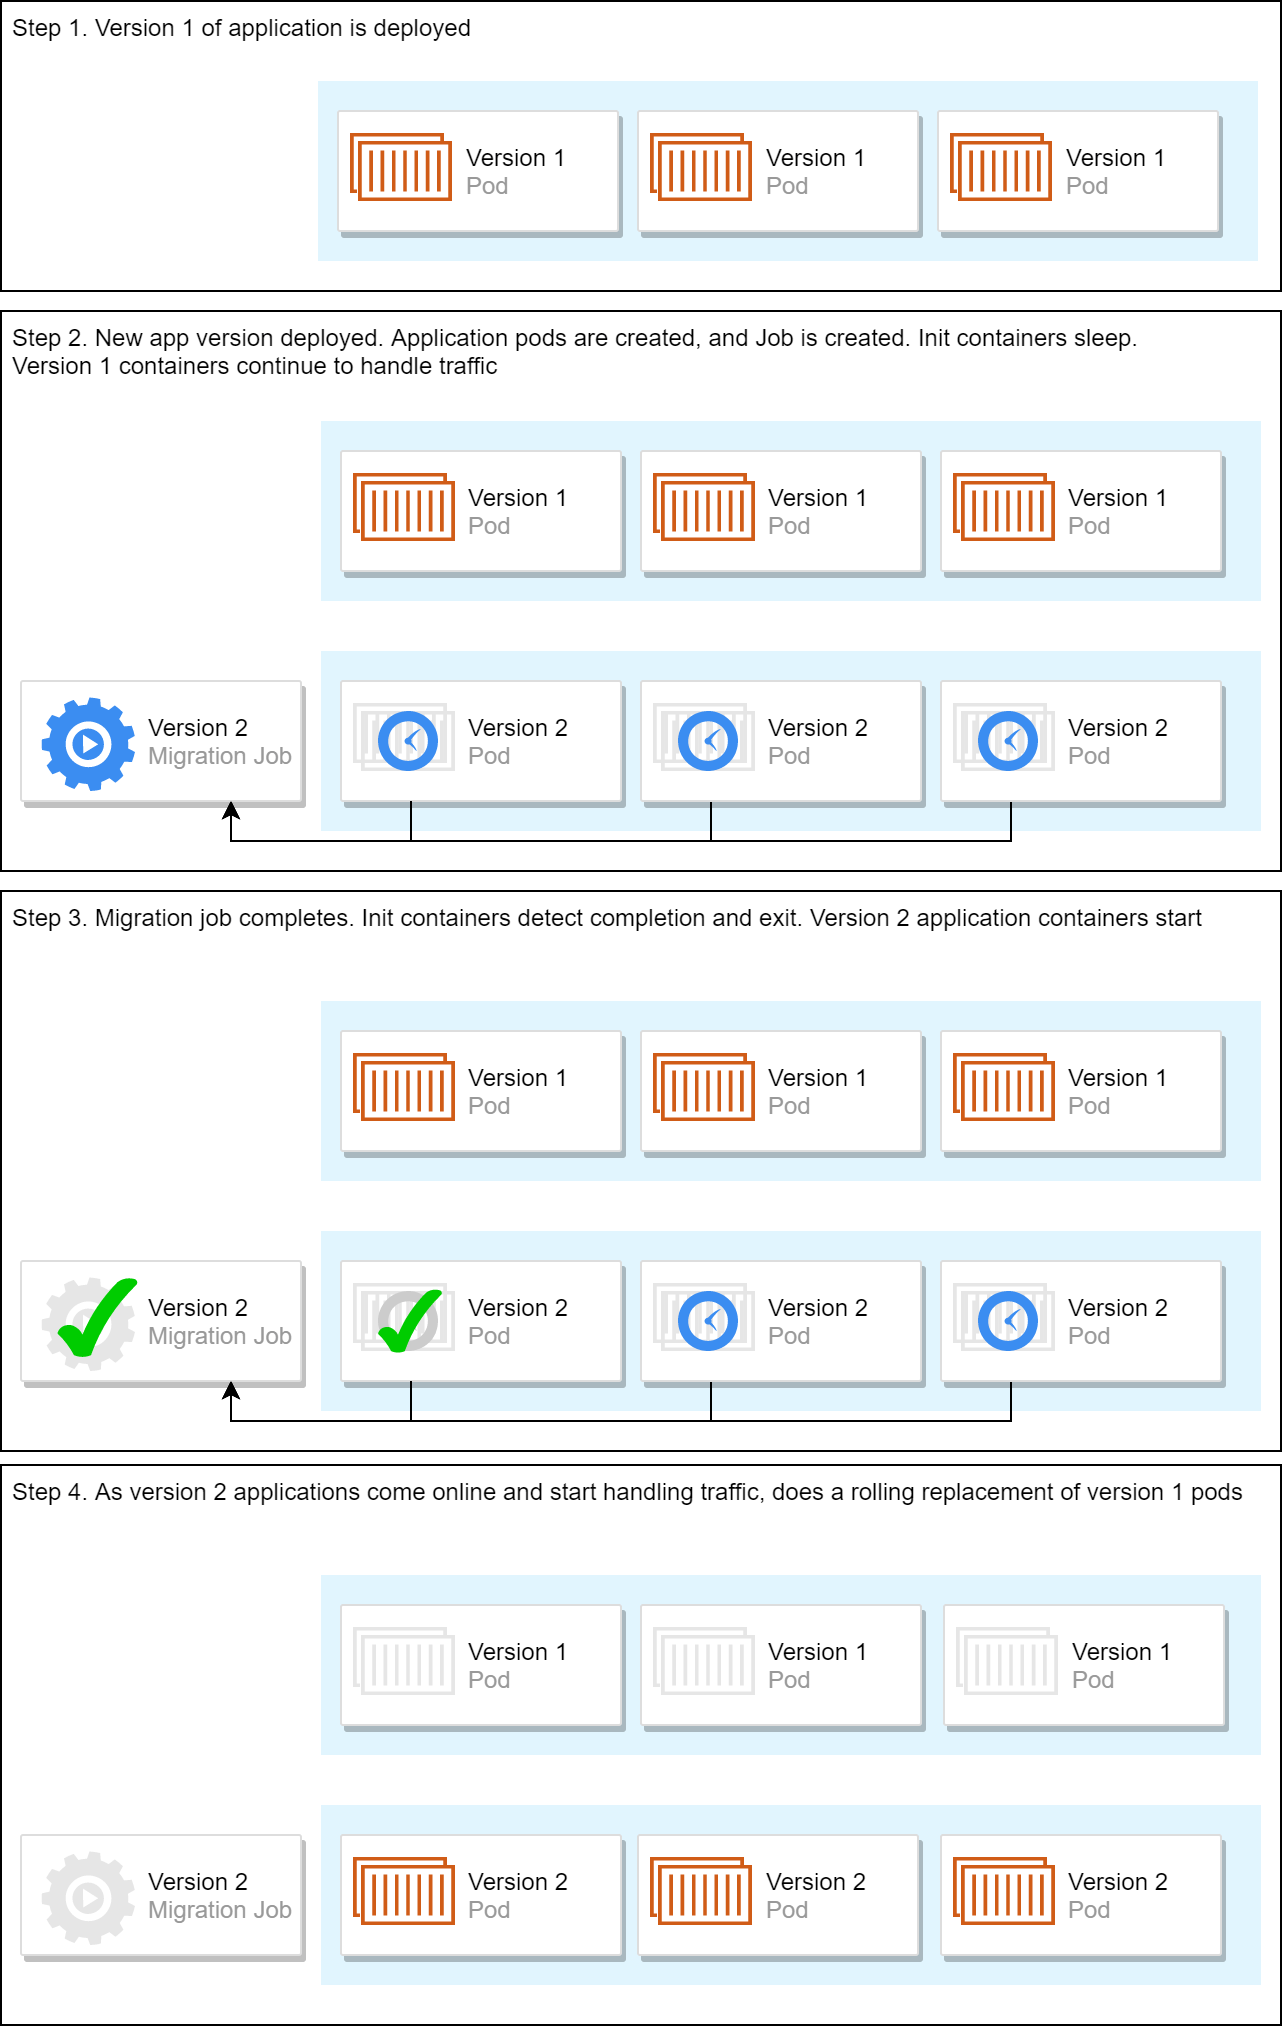 Image showing the deployment process using Jobs and init containers